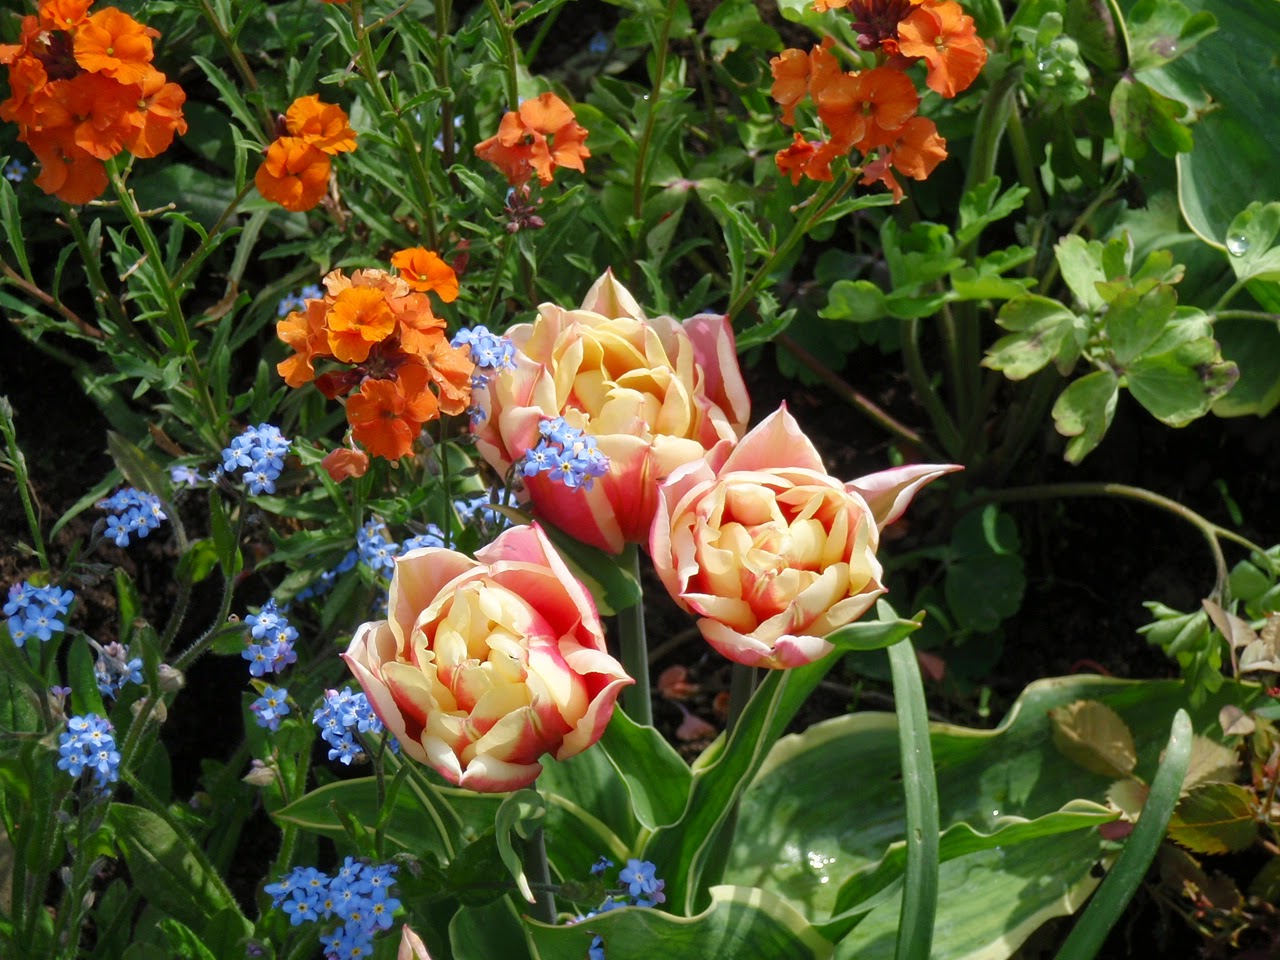 Tulips, forget-me-nots and Erysimum